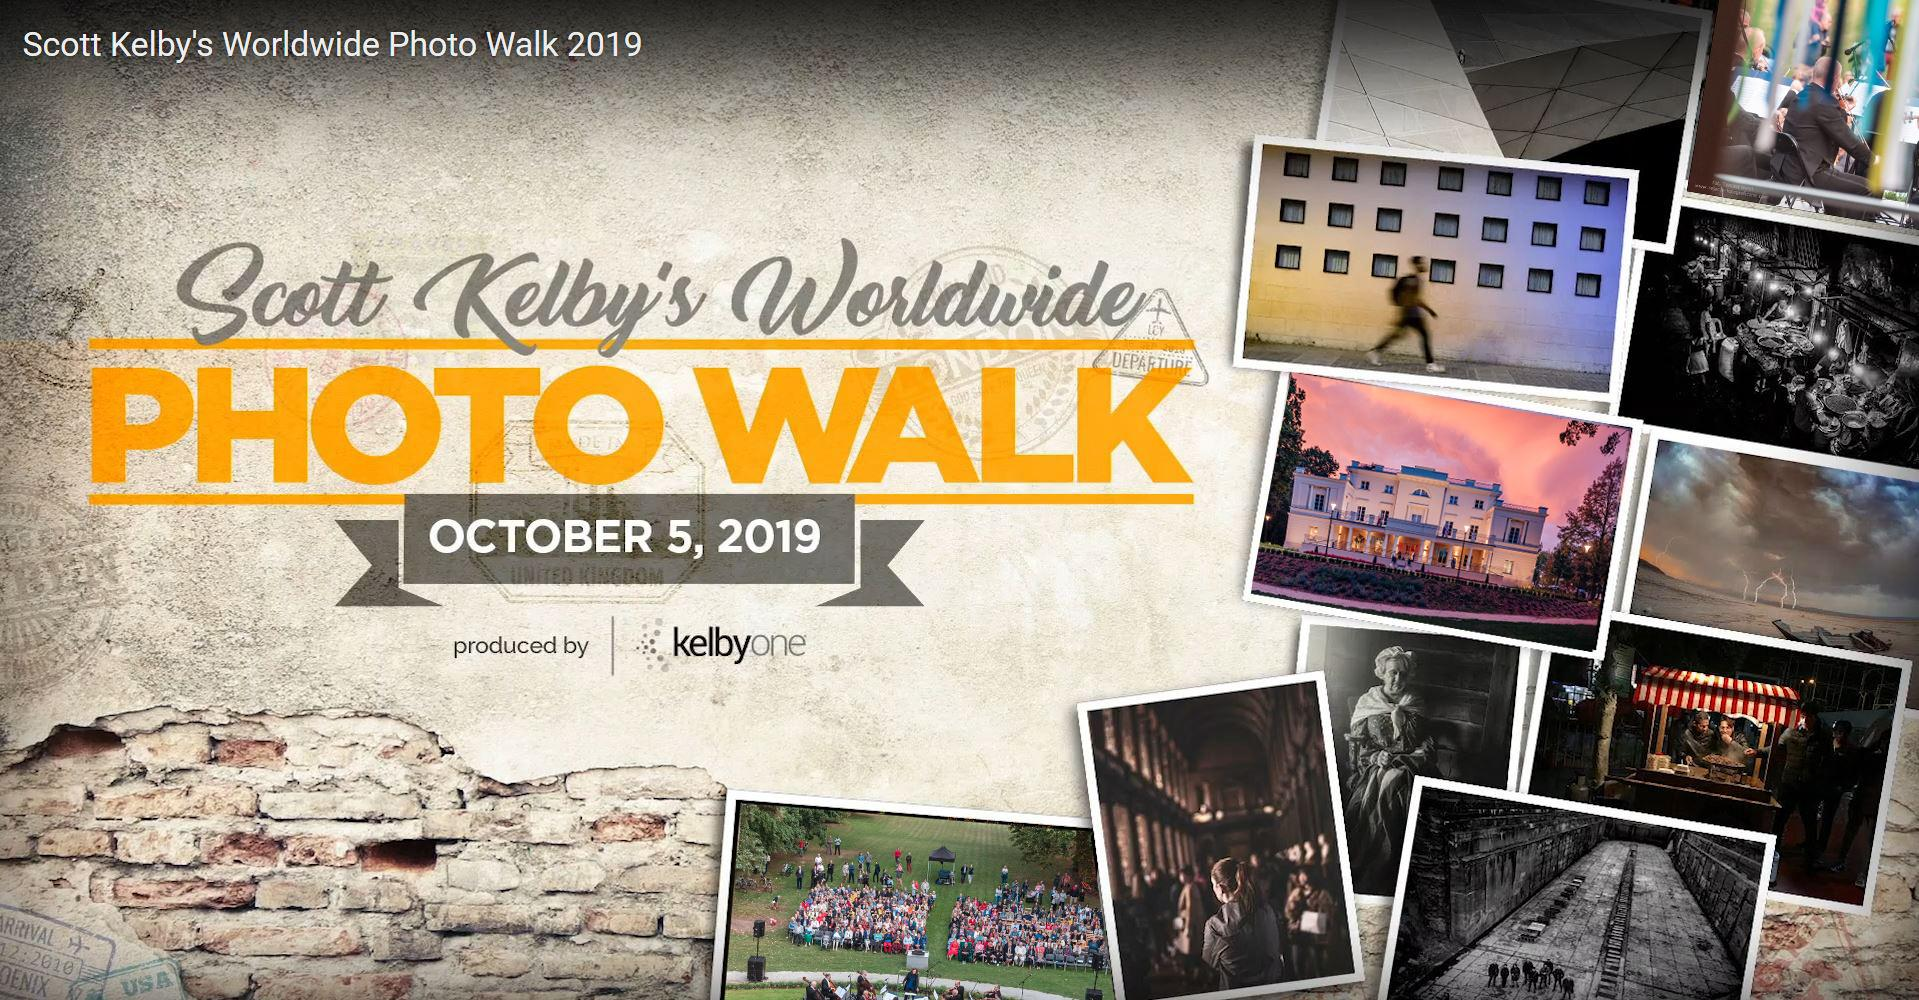 Scott Kelby's Worldwide Photo Walk 2019 Poland – Tarnowo Podgórne, Jankowice